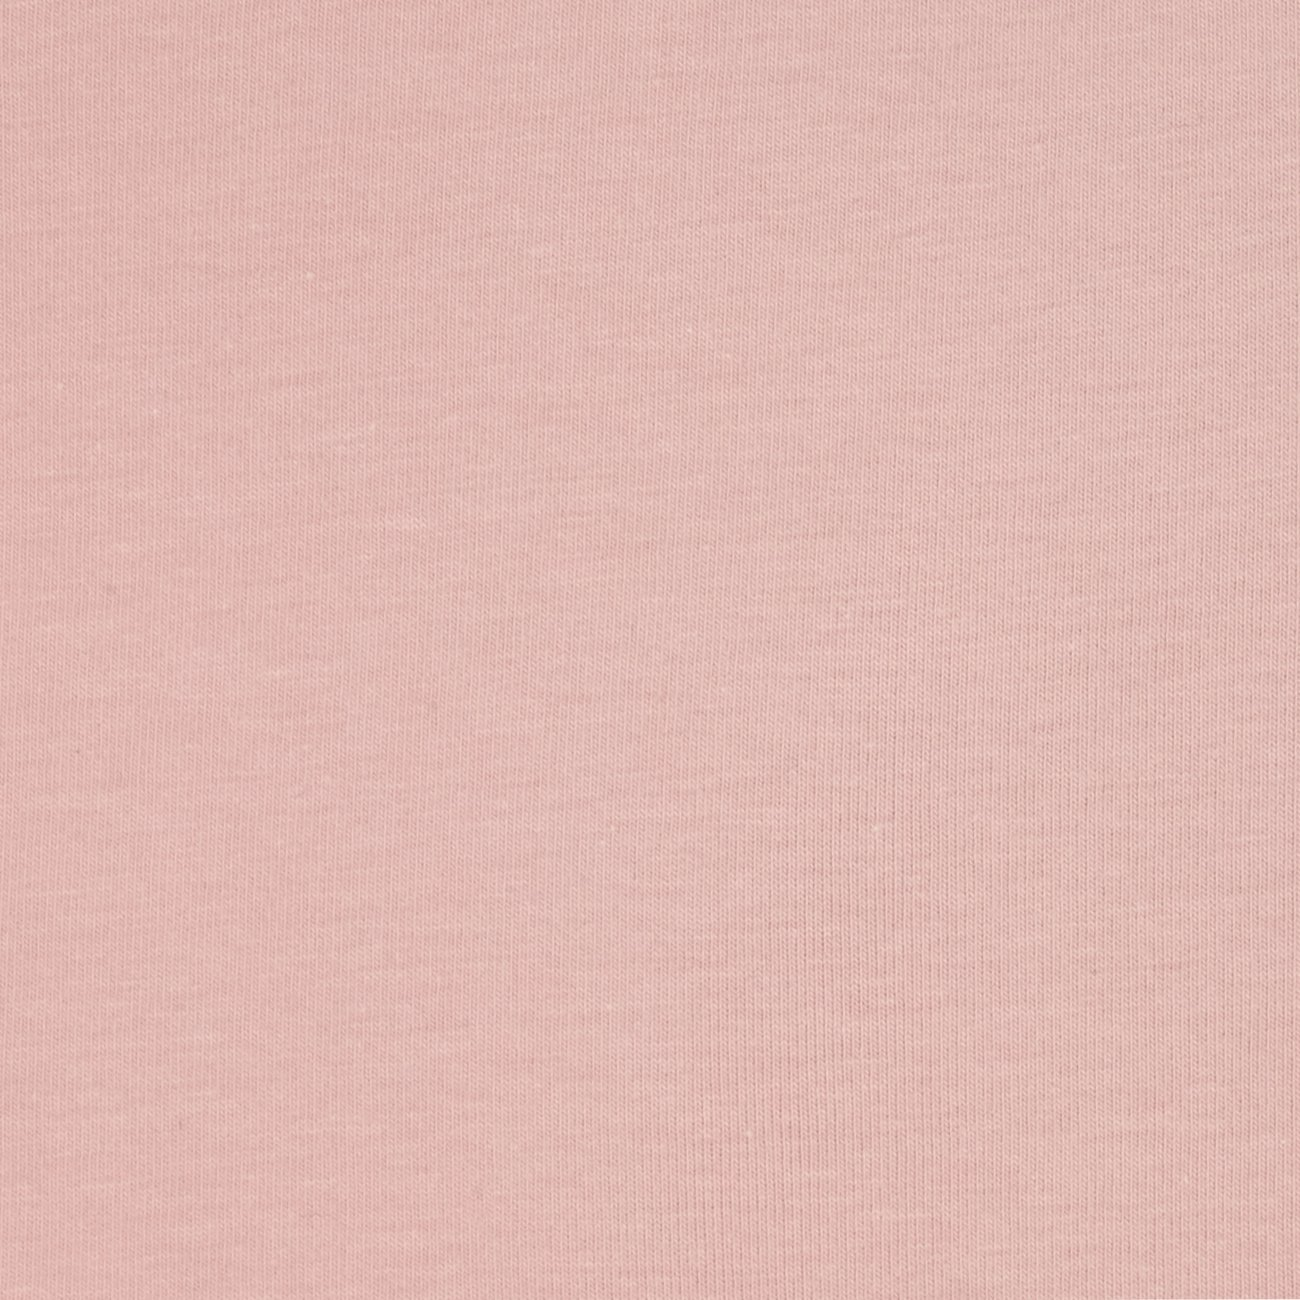 Art Gallery Solid Jersey Knit Crystal Pink Fabric By The Yard